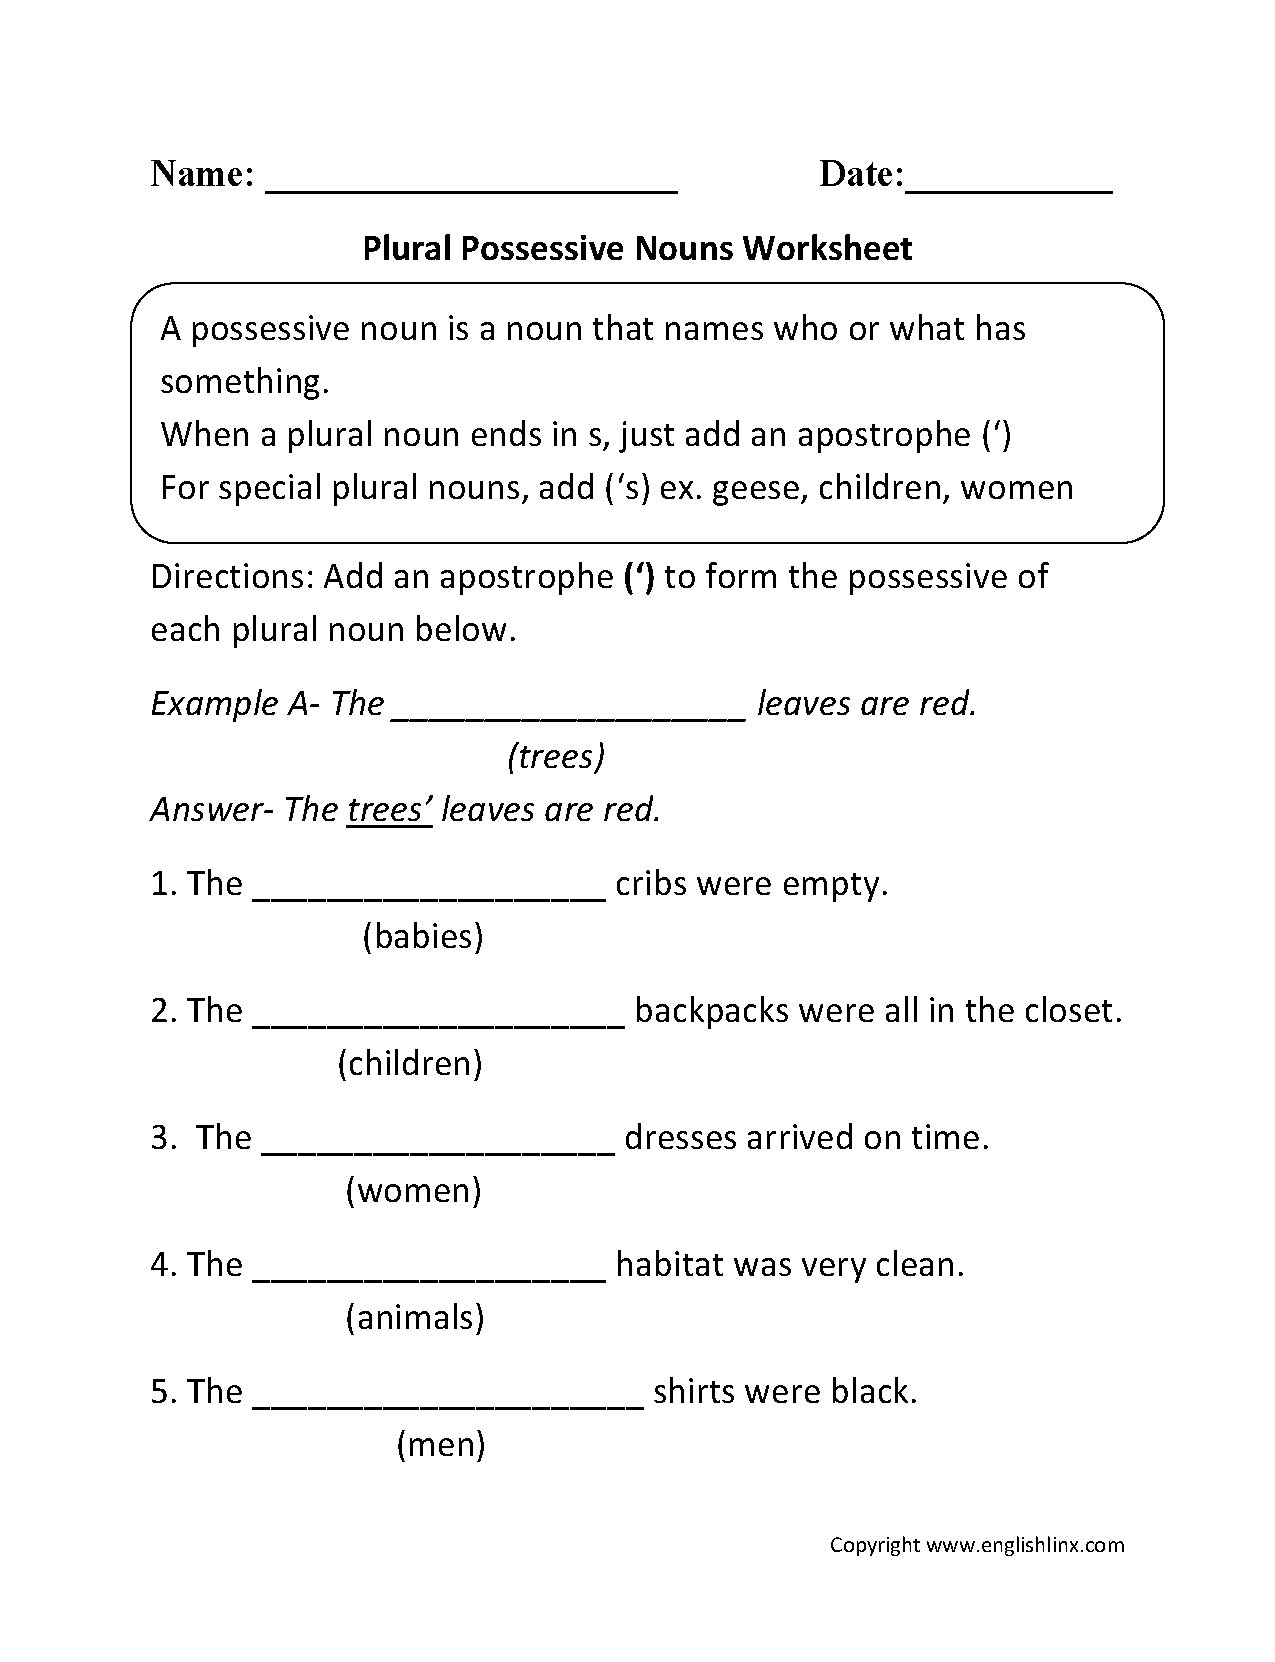 Aldiablosus  Marvelous Nouns Worksheets  Possessive Nouns Worksheets With Entrancing Possessive Nouns Worksheets With Nice Join The Dots Worksheet Also Worksheets For Ks In Addition English Grade  Worksheets And Worksheet Negative Exponents As Well As Language Arts Worksheets Grade  Additionally Pronouns Worksheets Grade  From Englishlinxcom With Aldiablosus  Entrancing Nouns Worksheets  Possessive Nouns Worksheets With Nice Possessive Nouns Worksheets And Marvelous Join The Dots Worksheet Also Worksheets For Ks In Addition English Grade  Worksheets From Englishlinxcom